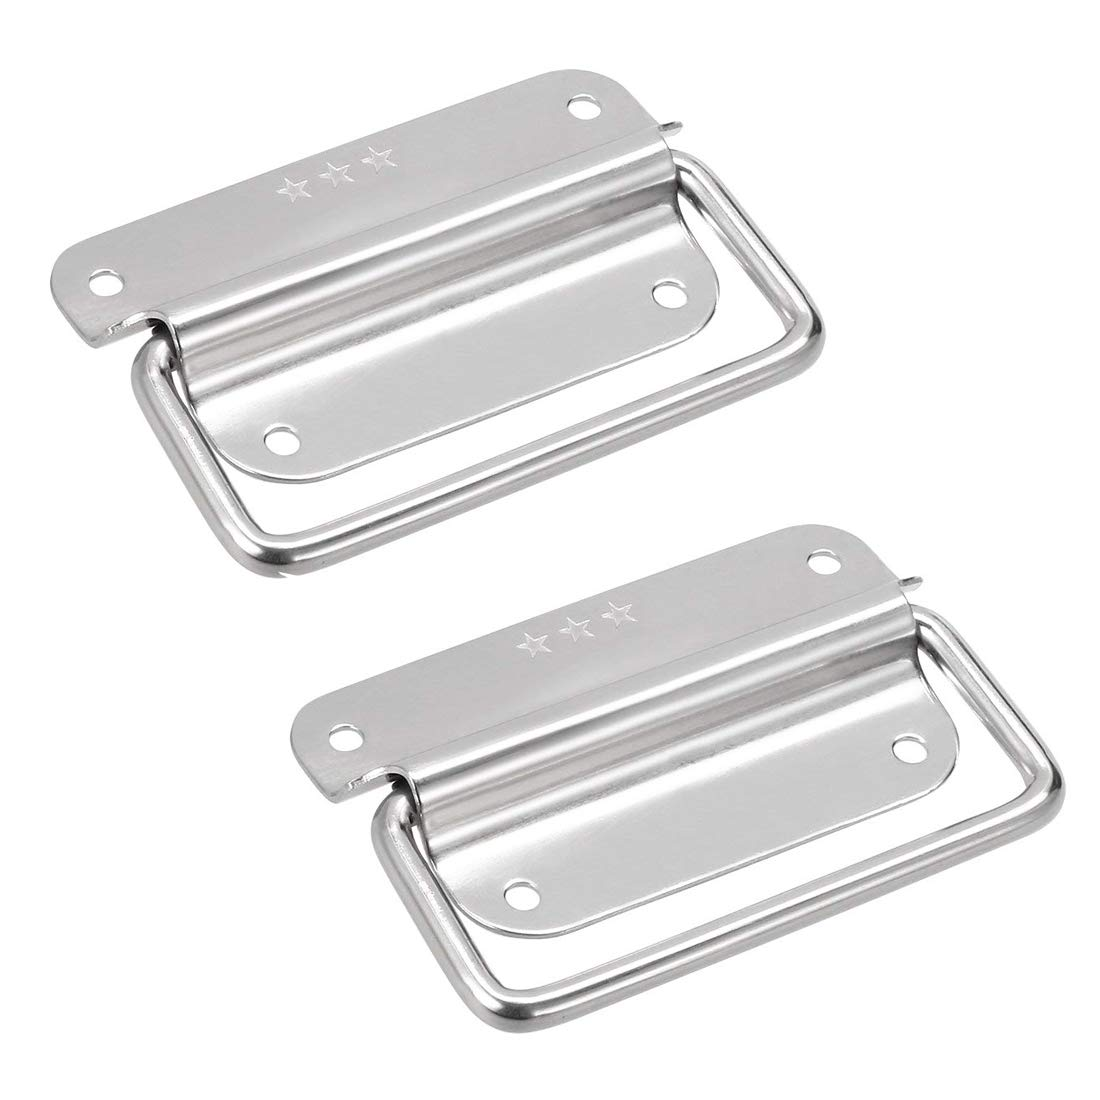 Chest Handles Karcy Iron Pull Handle 4 Tool Box Pull Handles Cabinet Pull Handle Silver Pack of 2